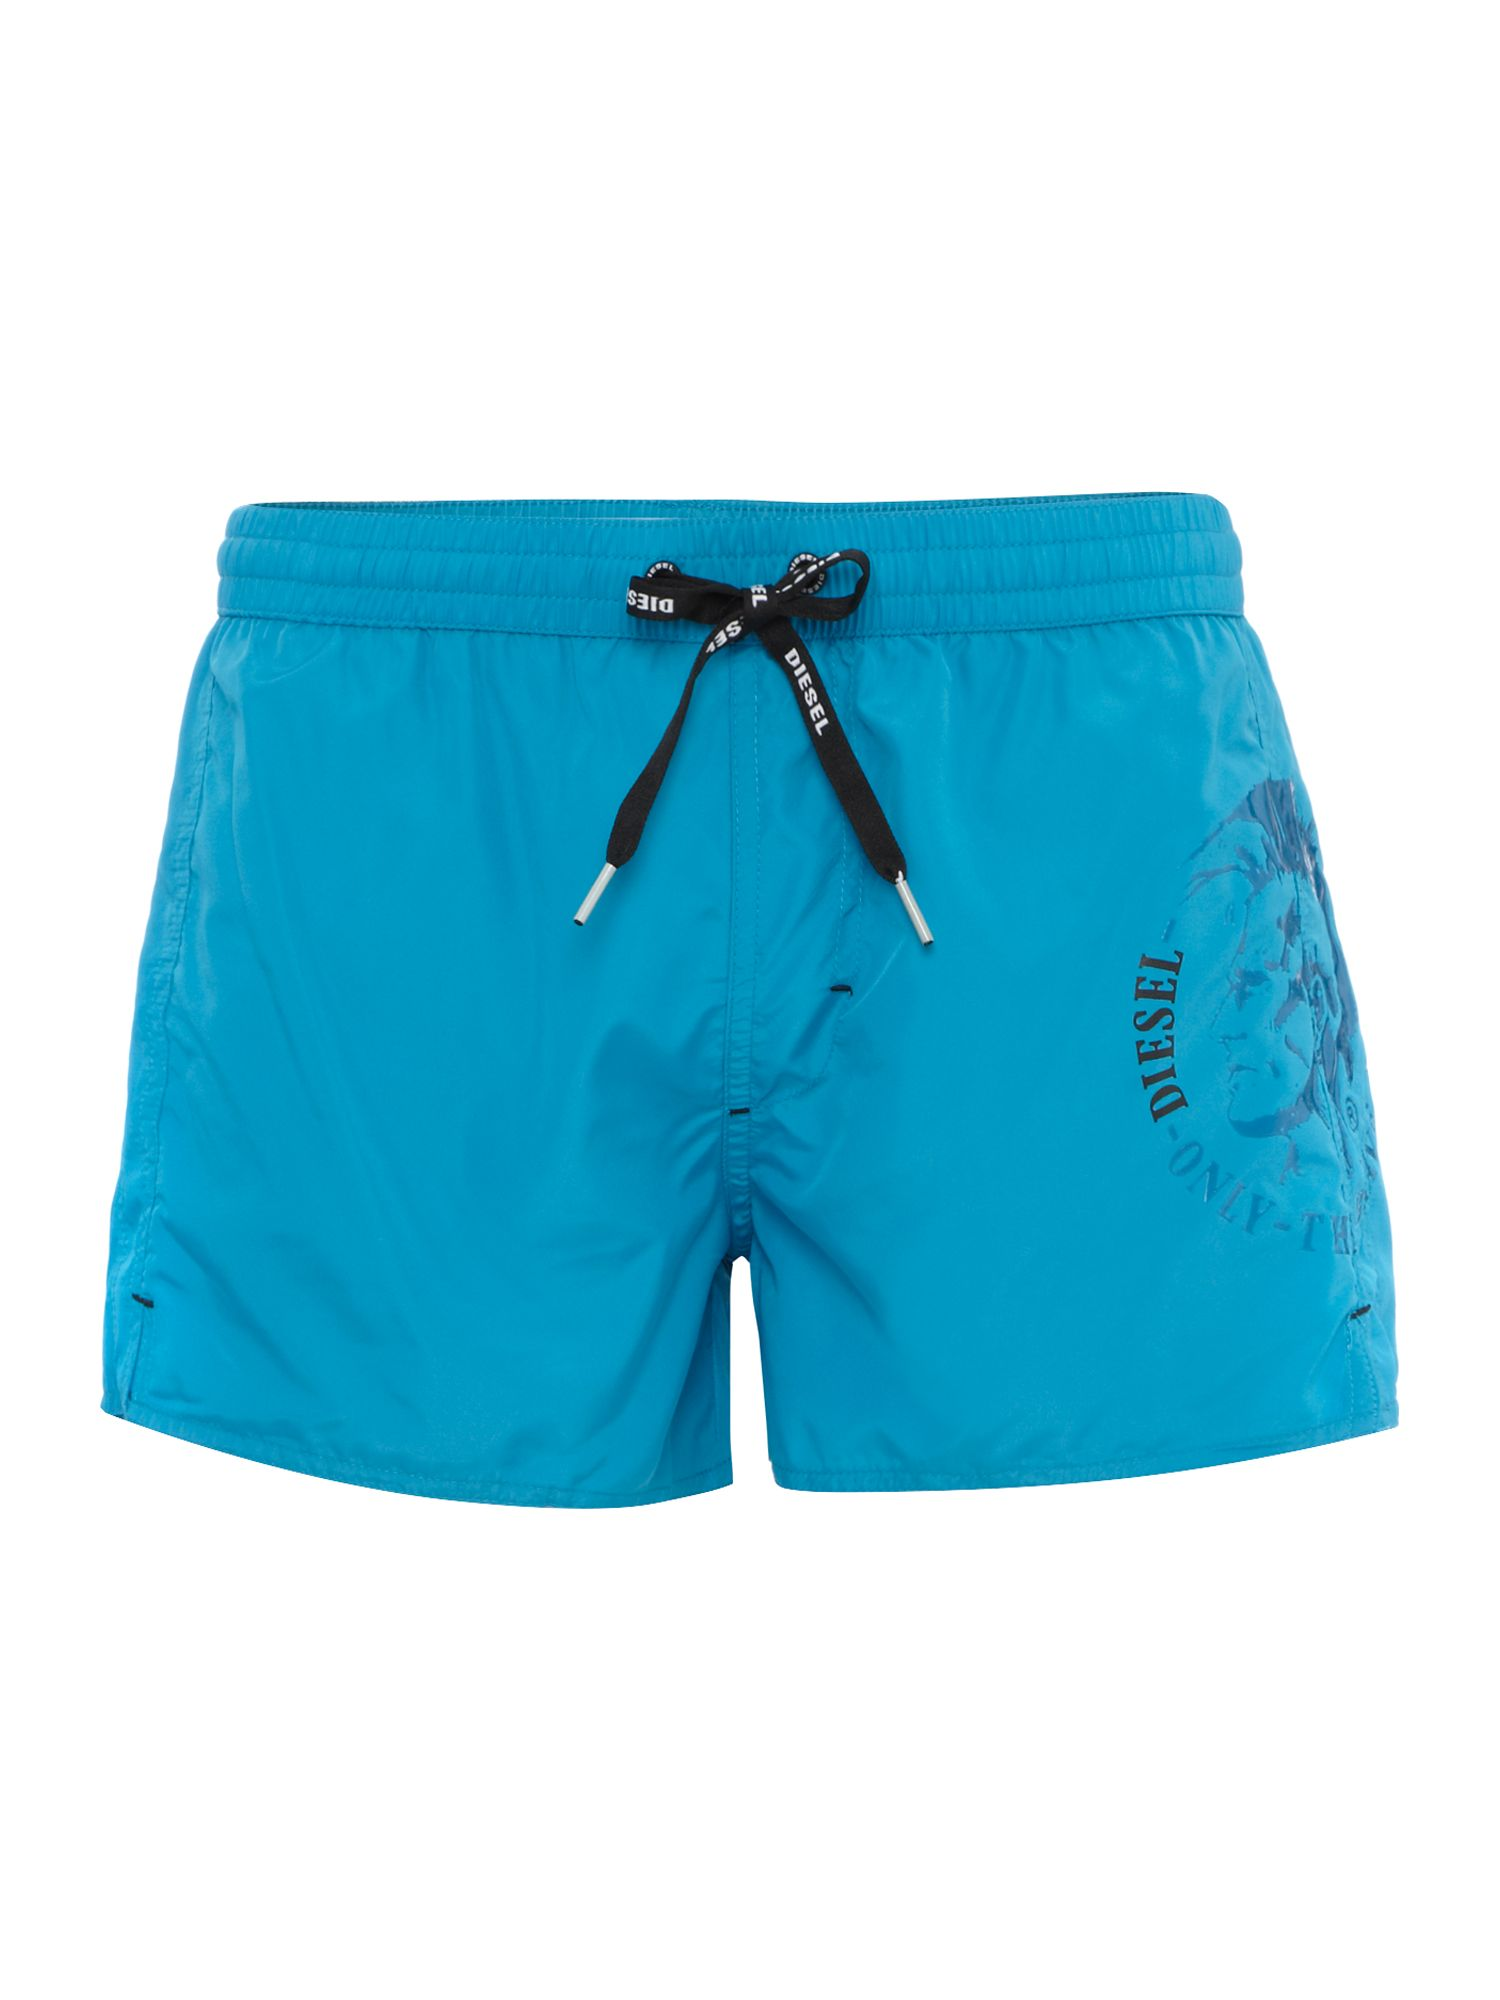 Coralrif short length swim short